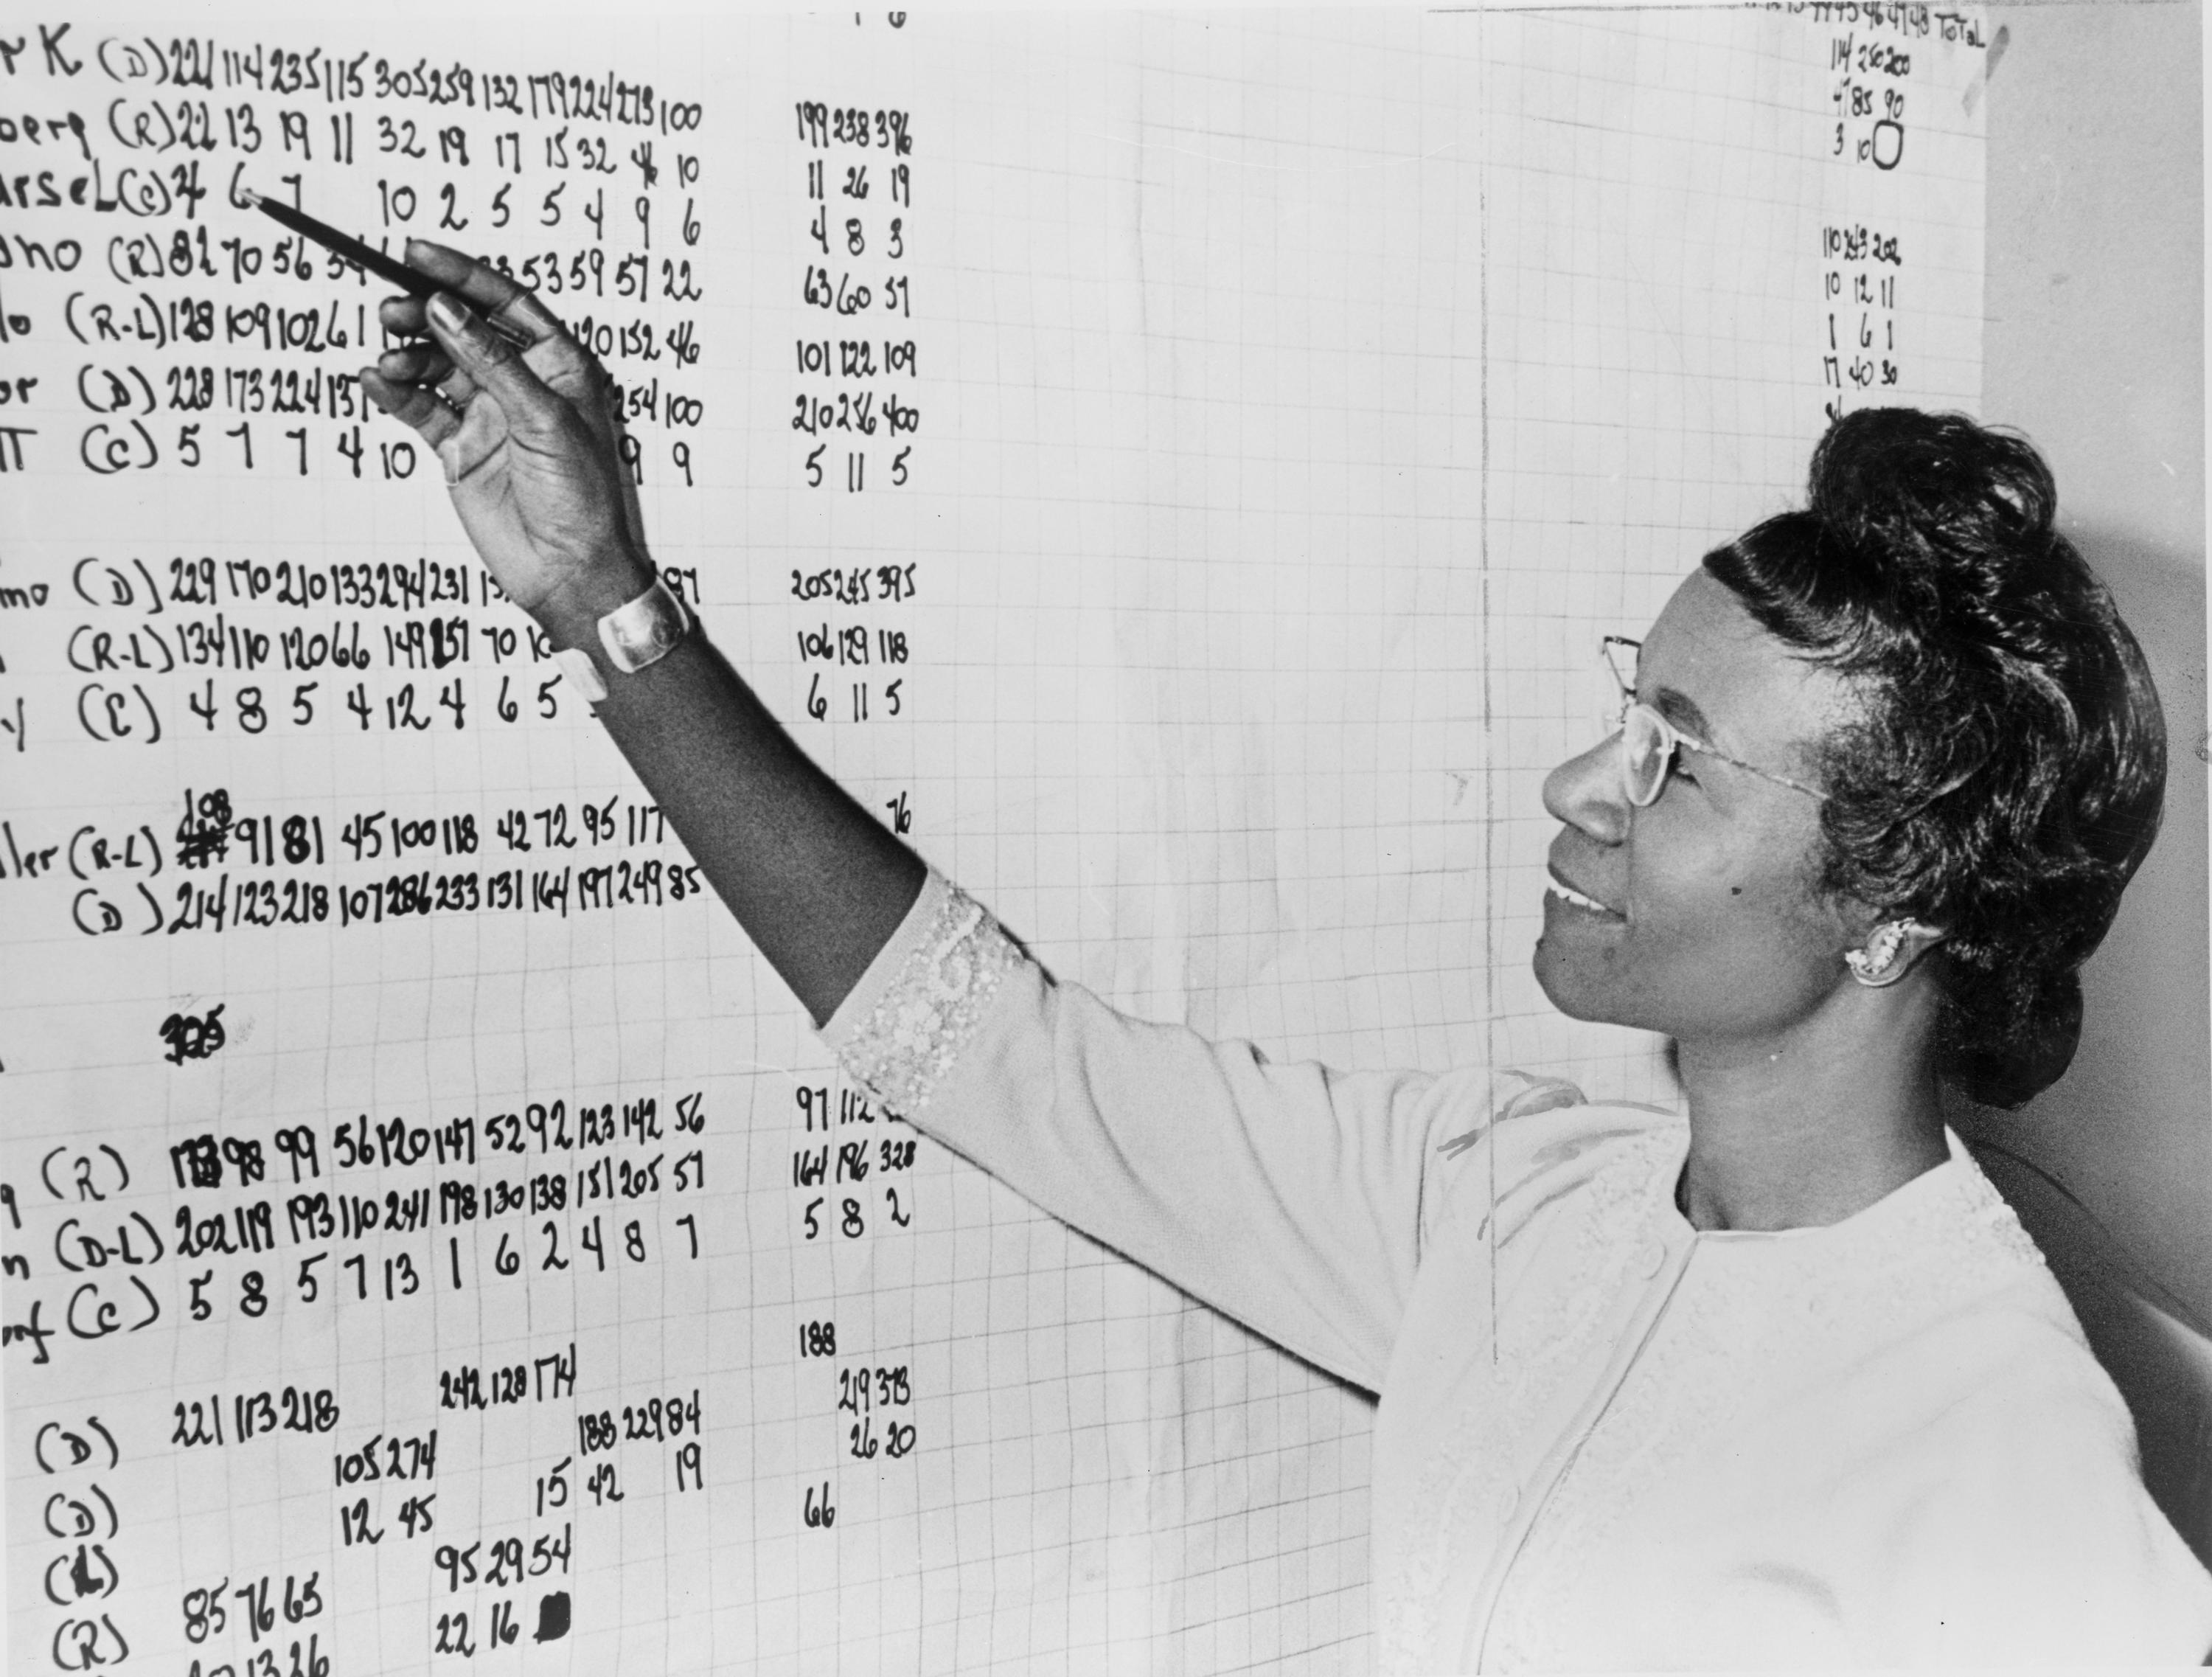 Chisholm reviewing political statistics in 1965.